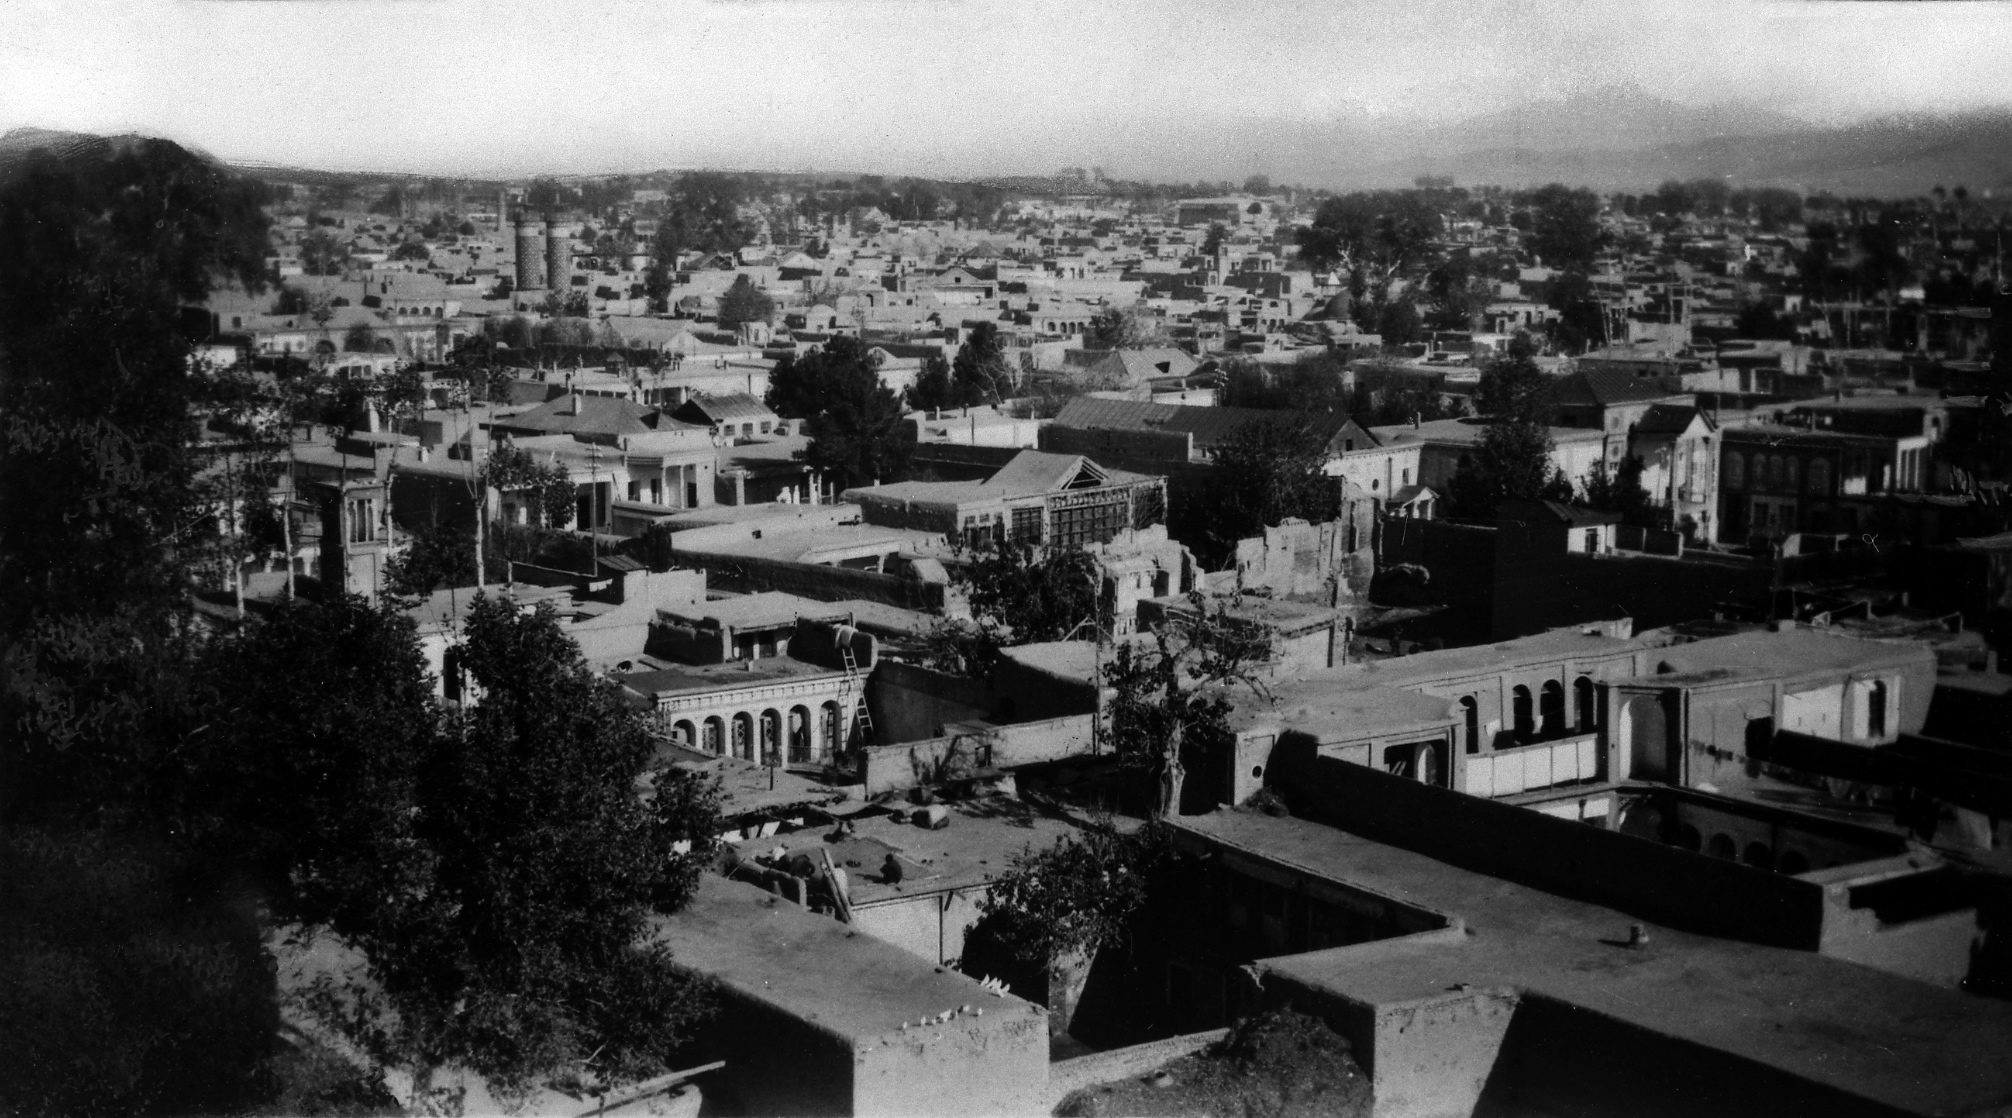 Tehran in 1930 by Effie Baker, a great Handmaiden of Bahá'u'lláh from New Zealand